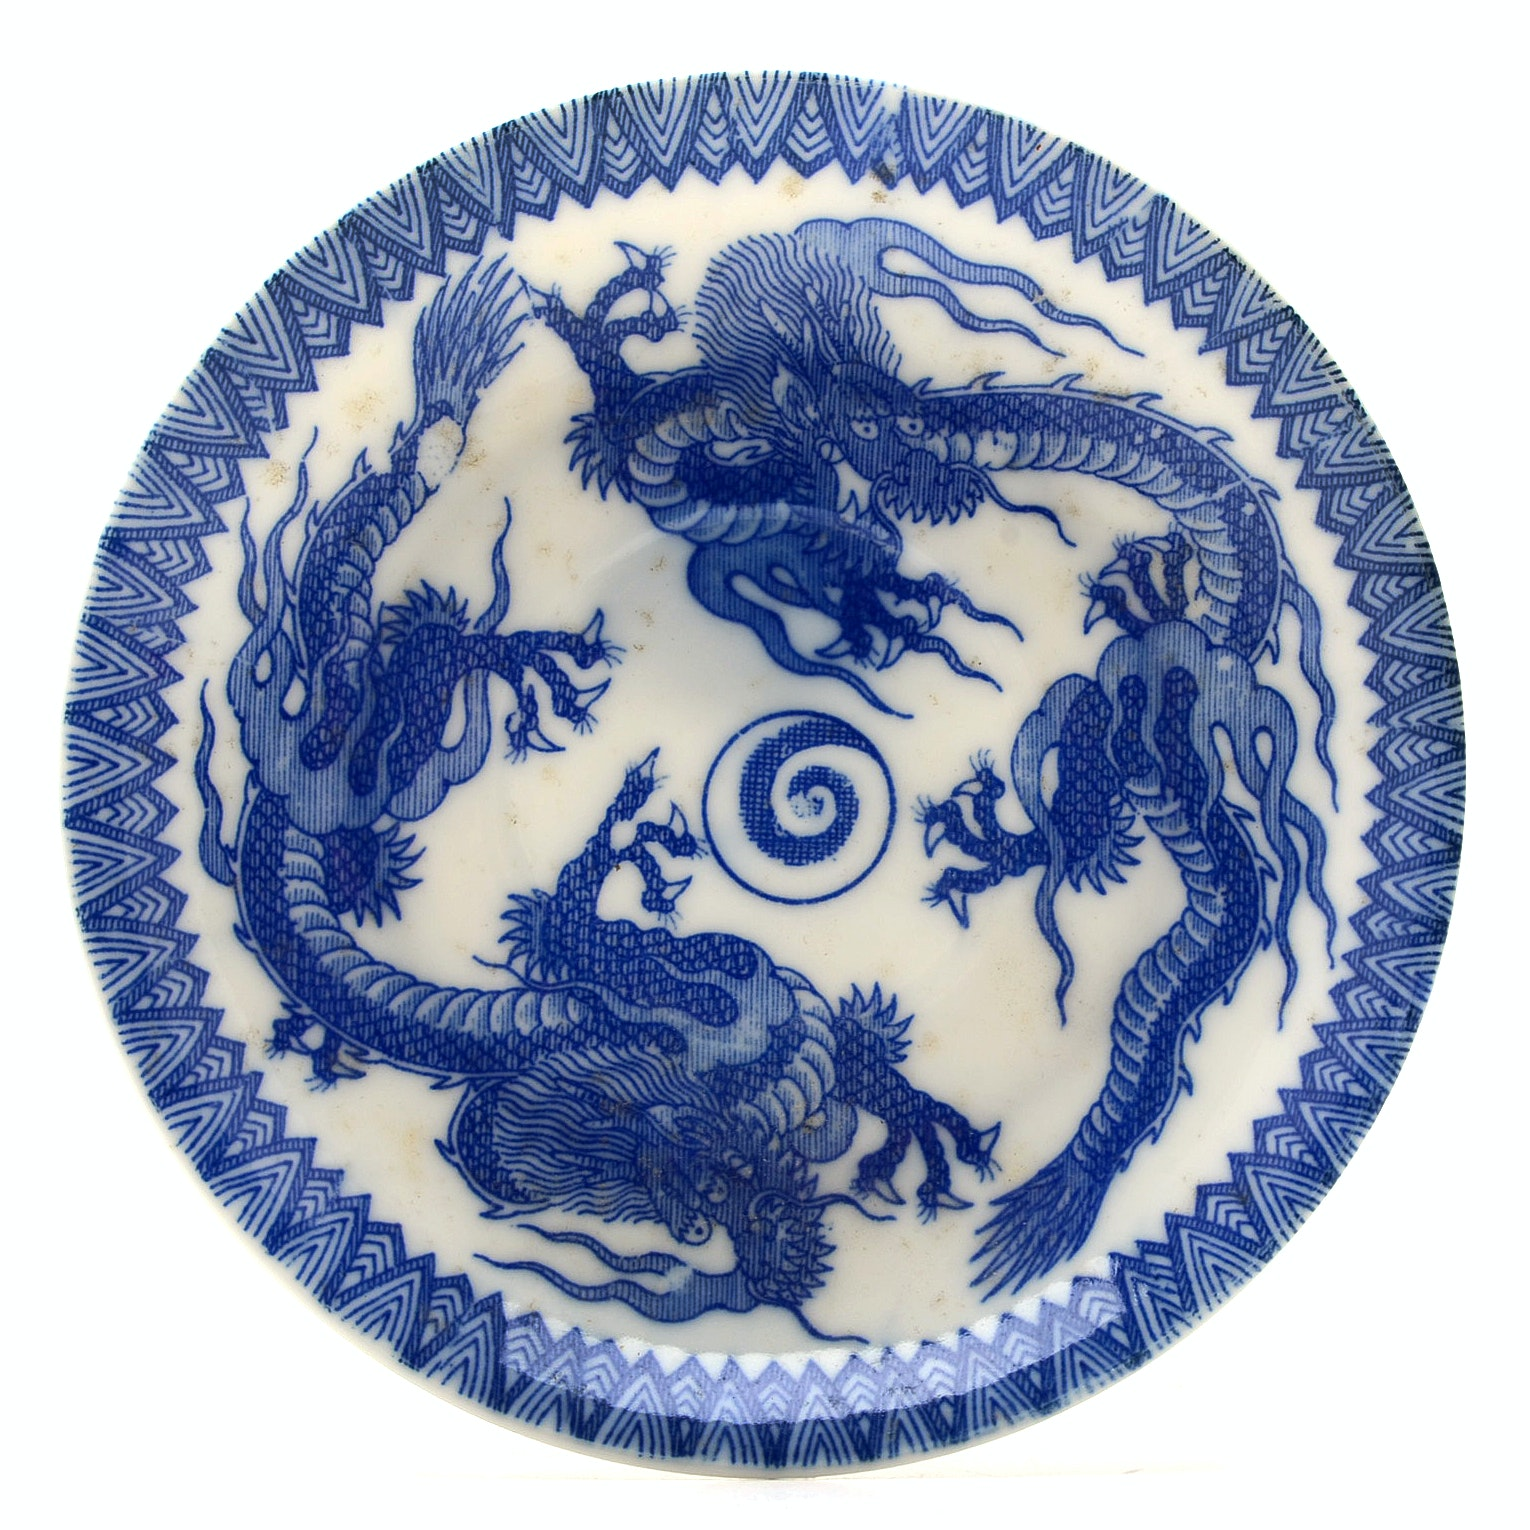 Qing Dynasty Blue and White Porcelain Dish